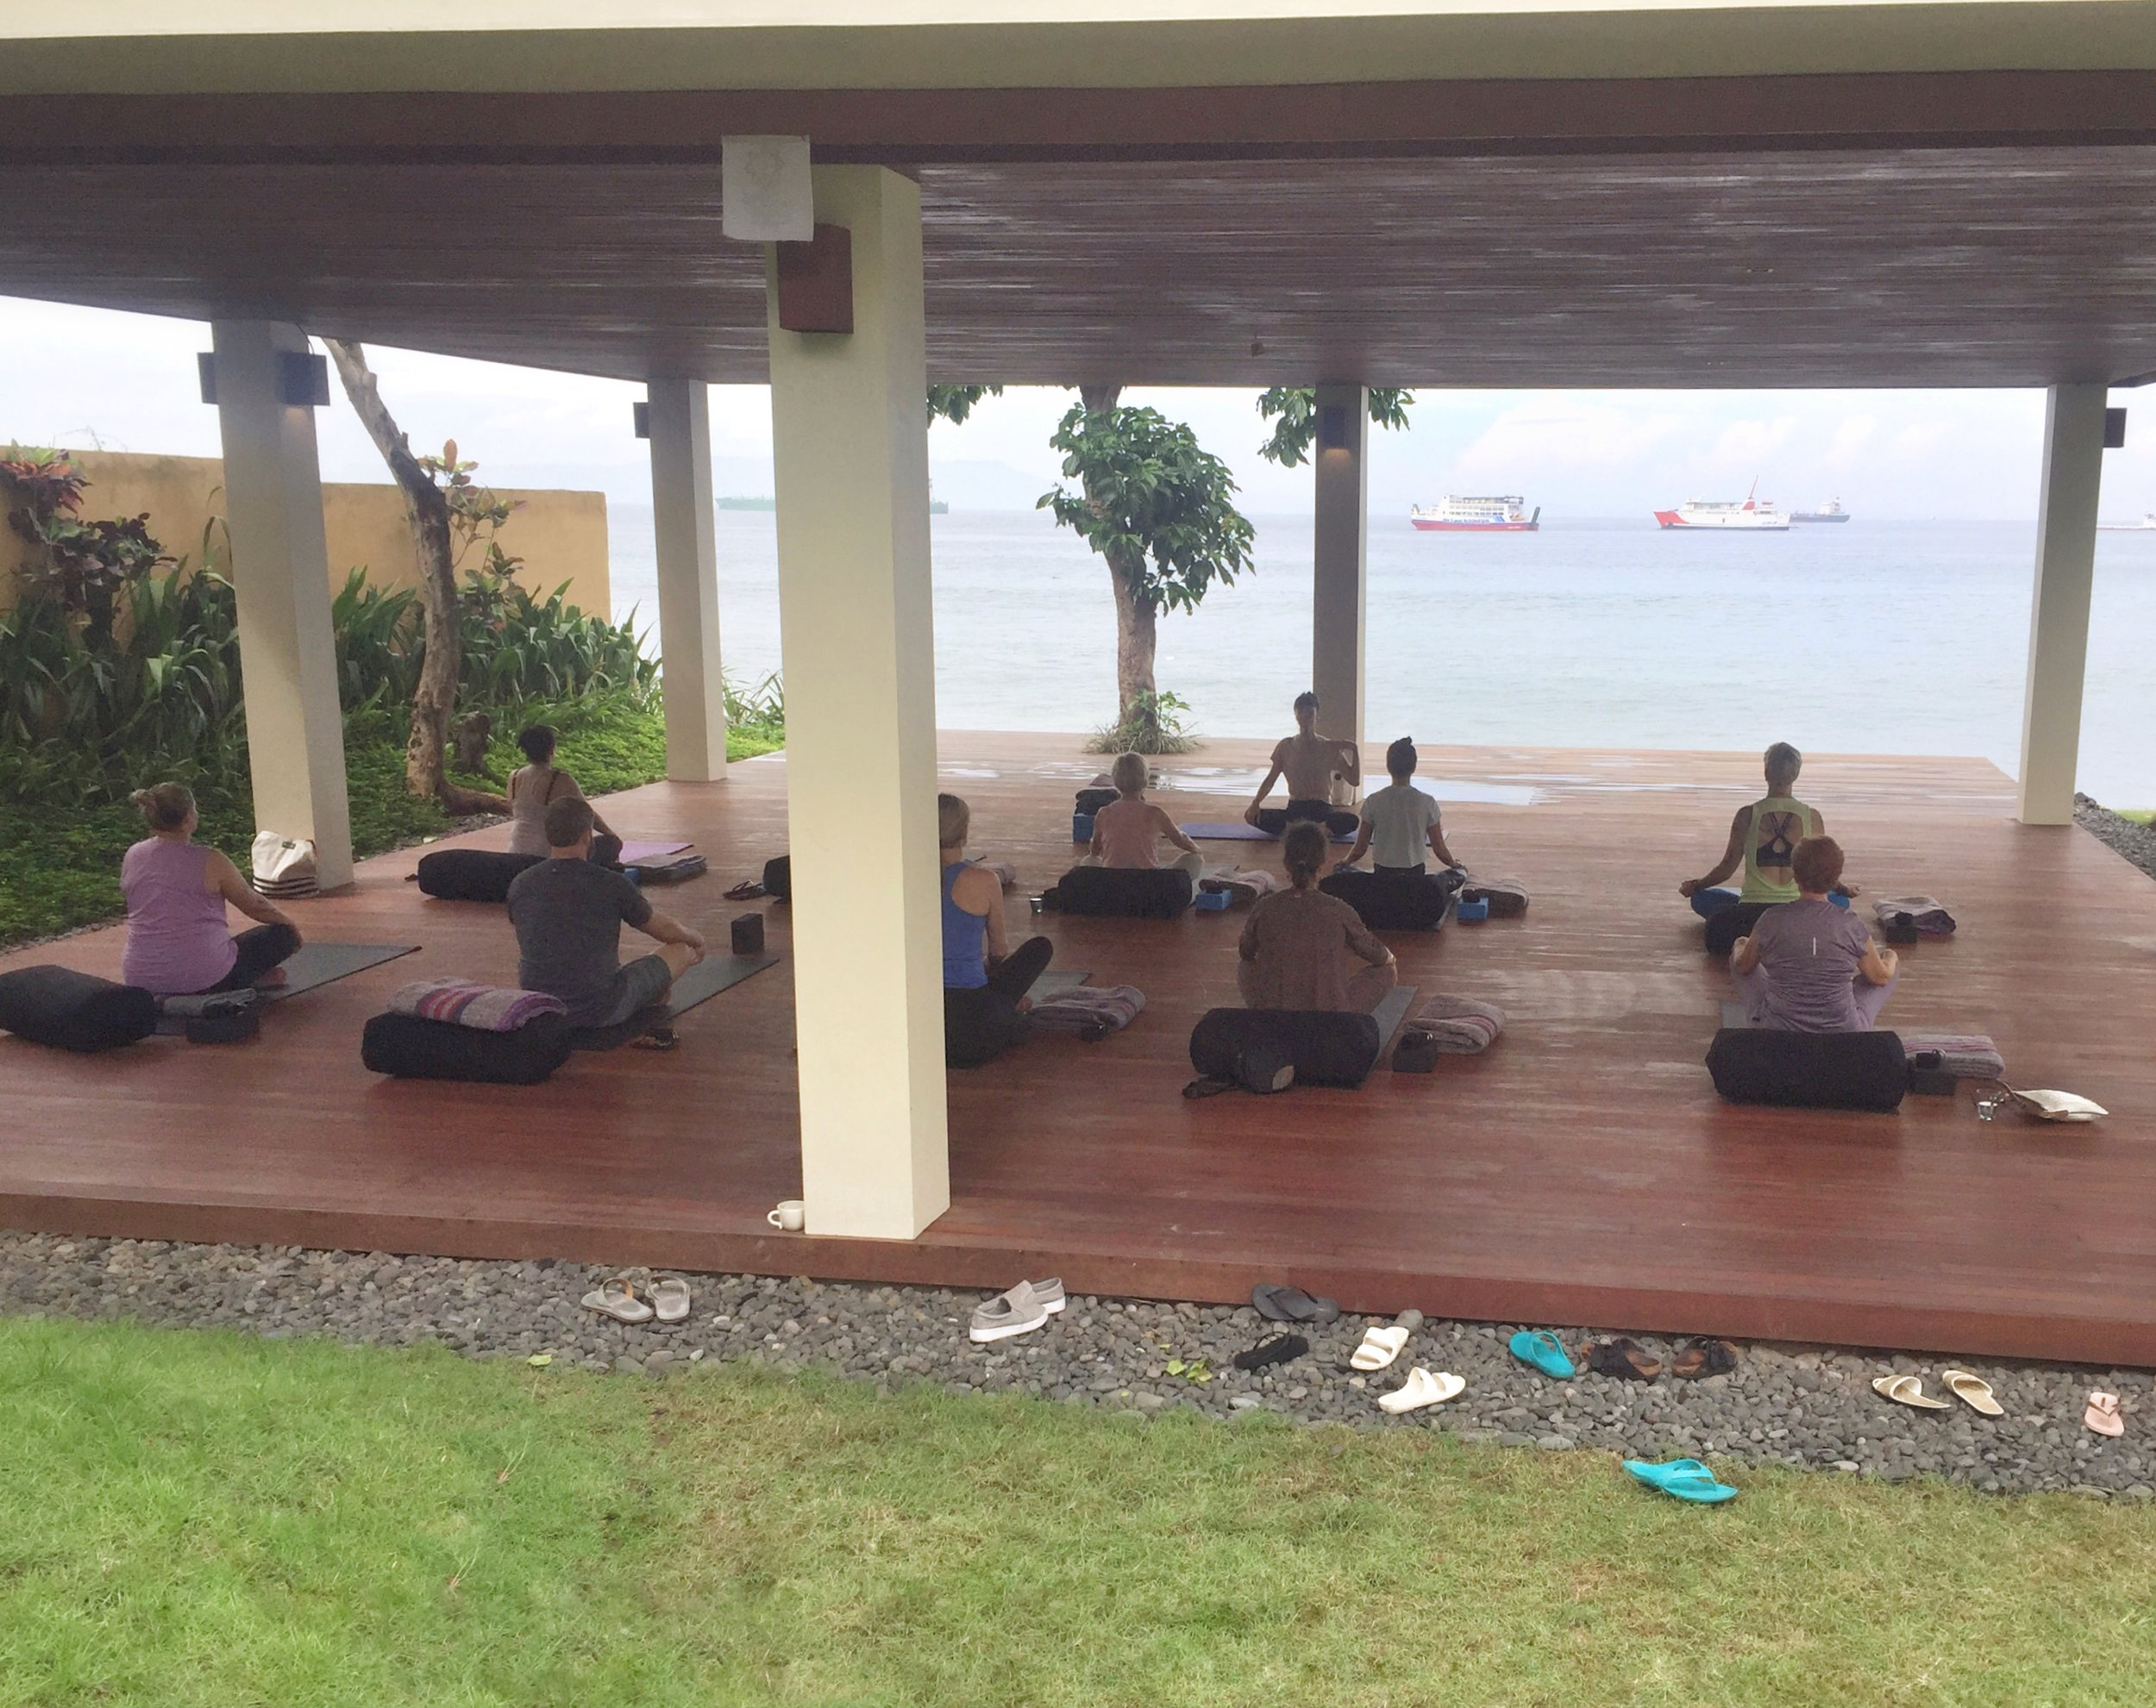 The hotel yoga pavilion by the sea | EAT.PRAY.MOVE Yoga | Bali, Indonesia